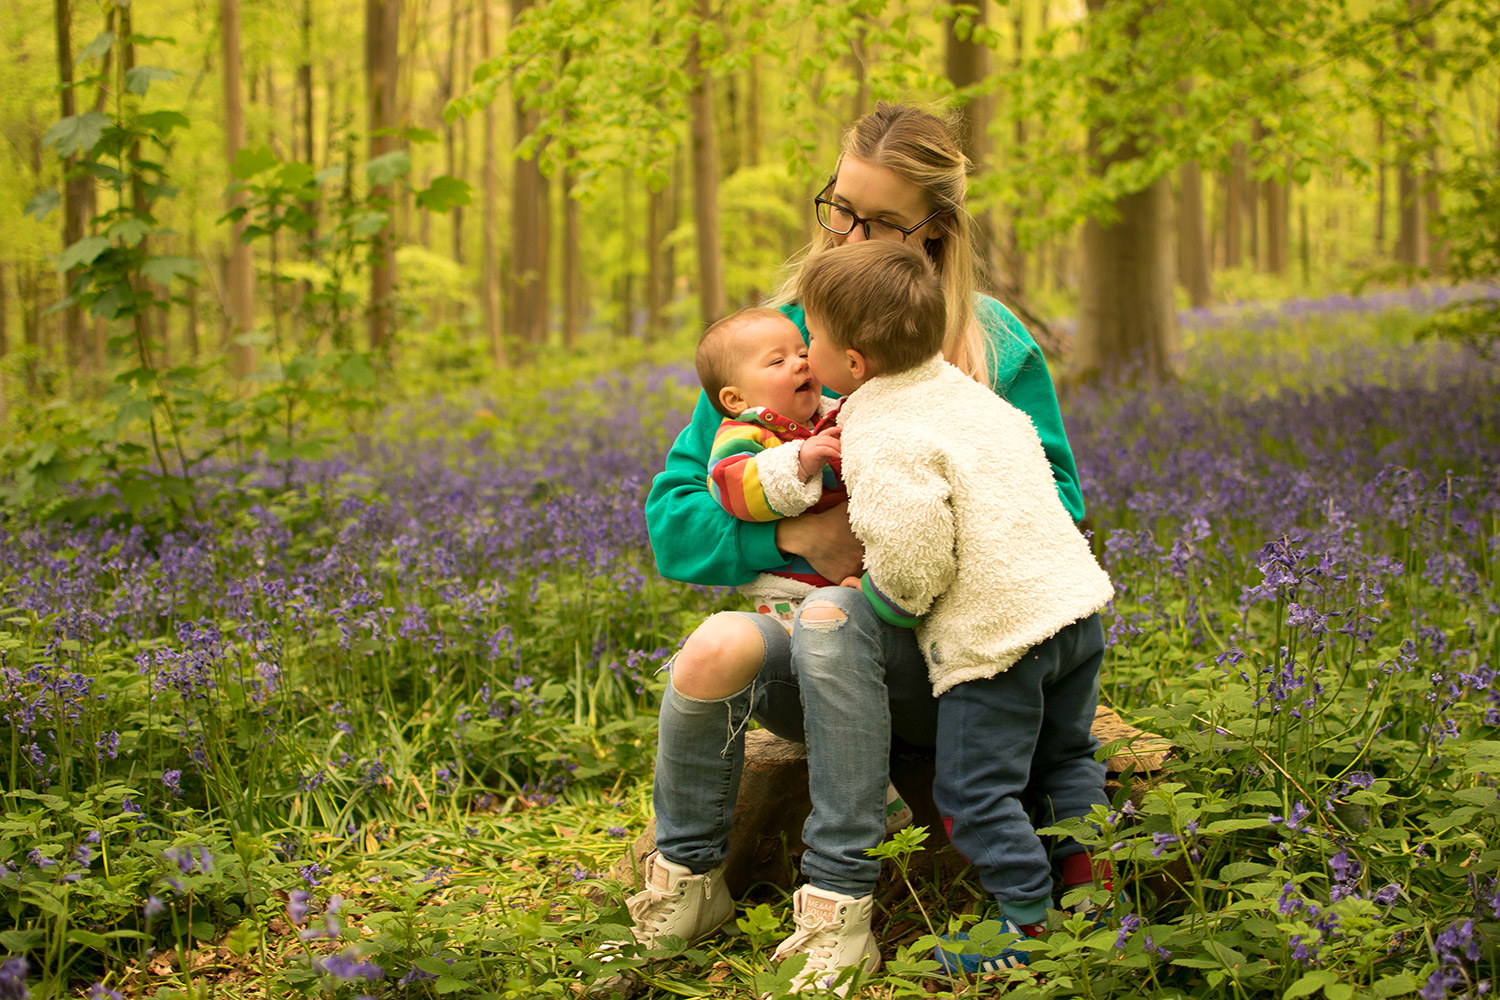 The BiBs and Us - Mother and two sons walking outside among the bluebells wearing Urban Outfitters 'K' sweatshirt and Frugi rainbow snuggle fleece with Little Green Radicals house sleepsuit